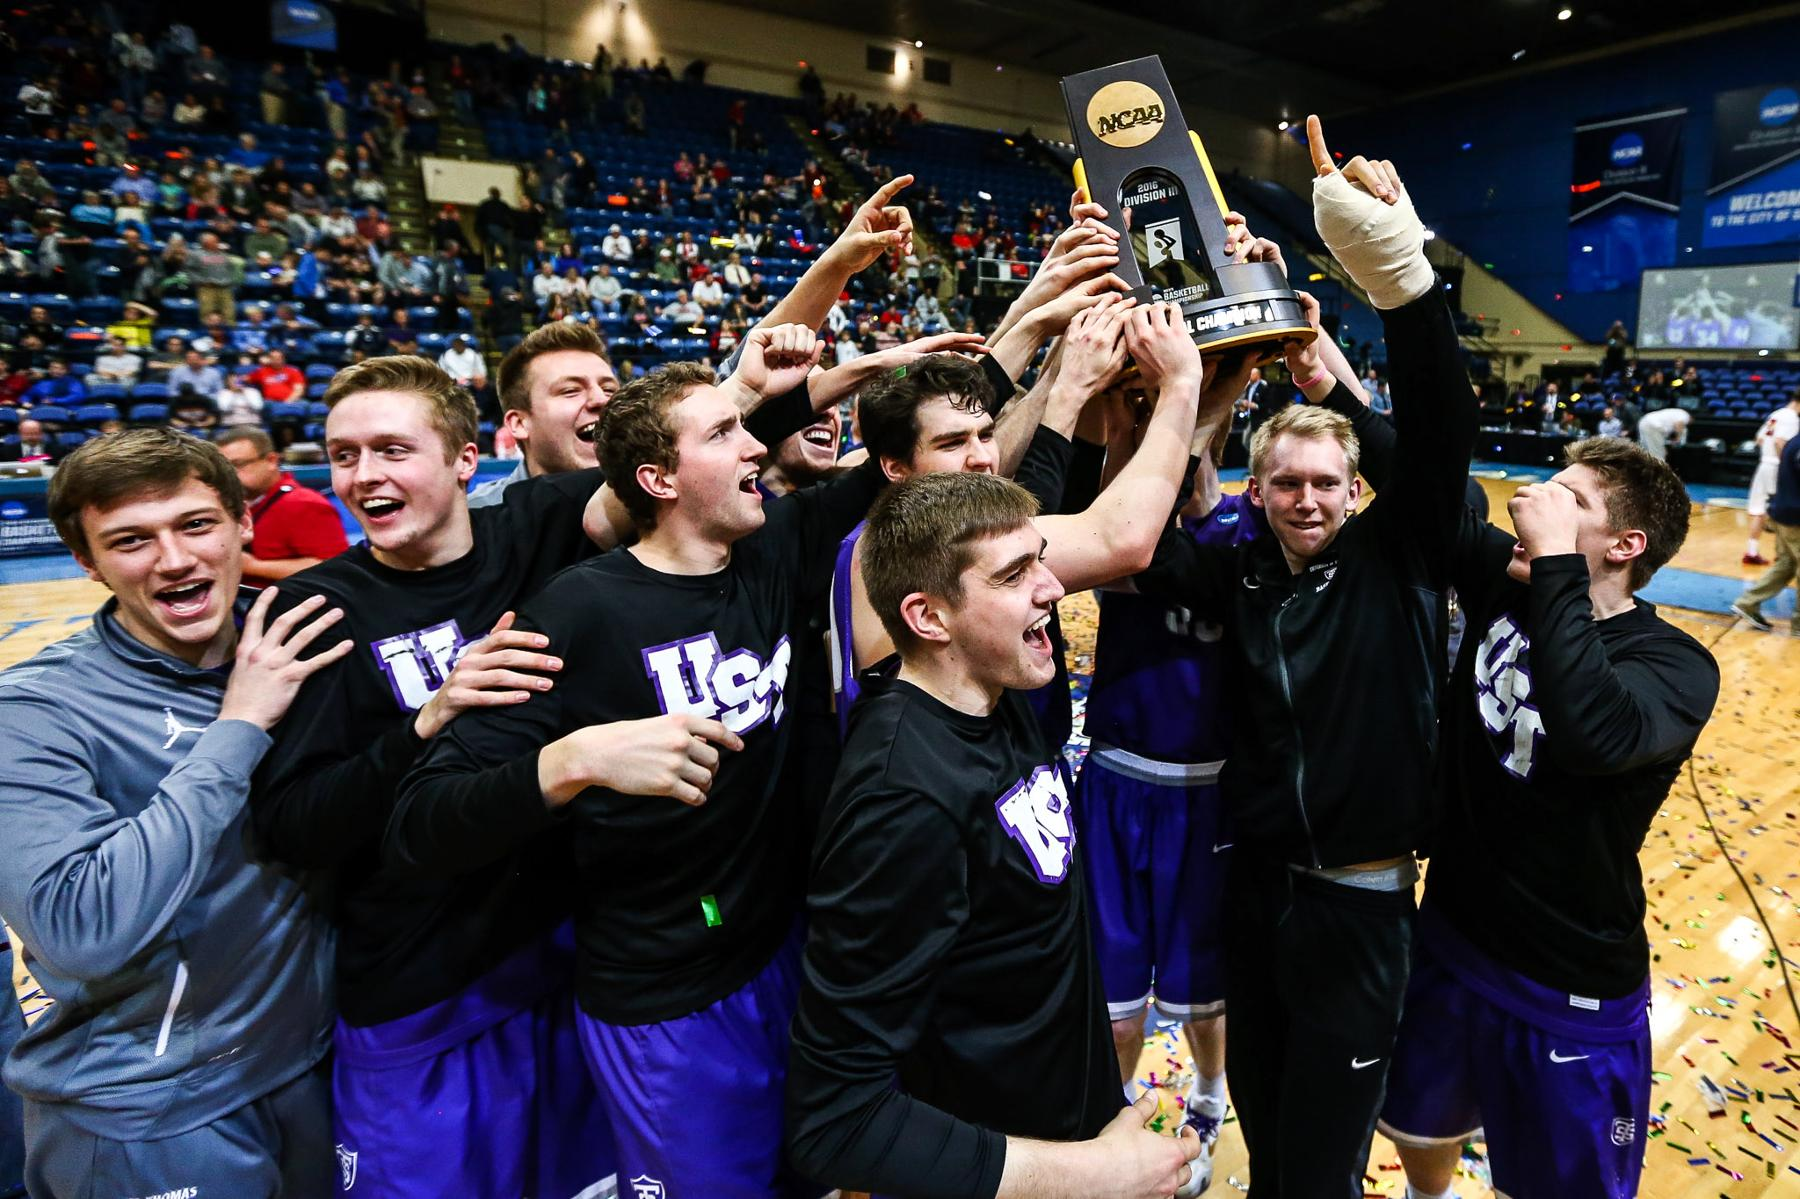 MIAC ousts original member St. Thomas for being too strong